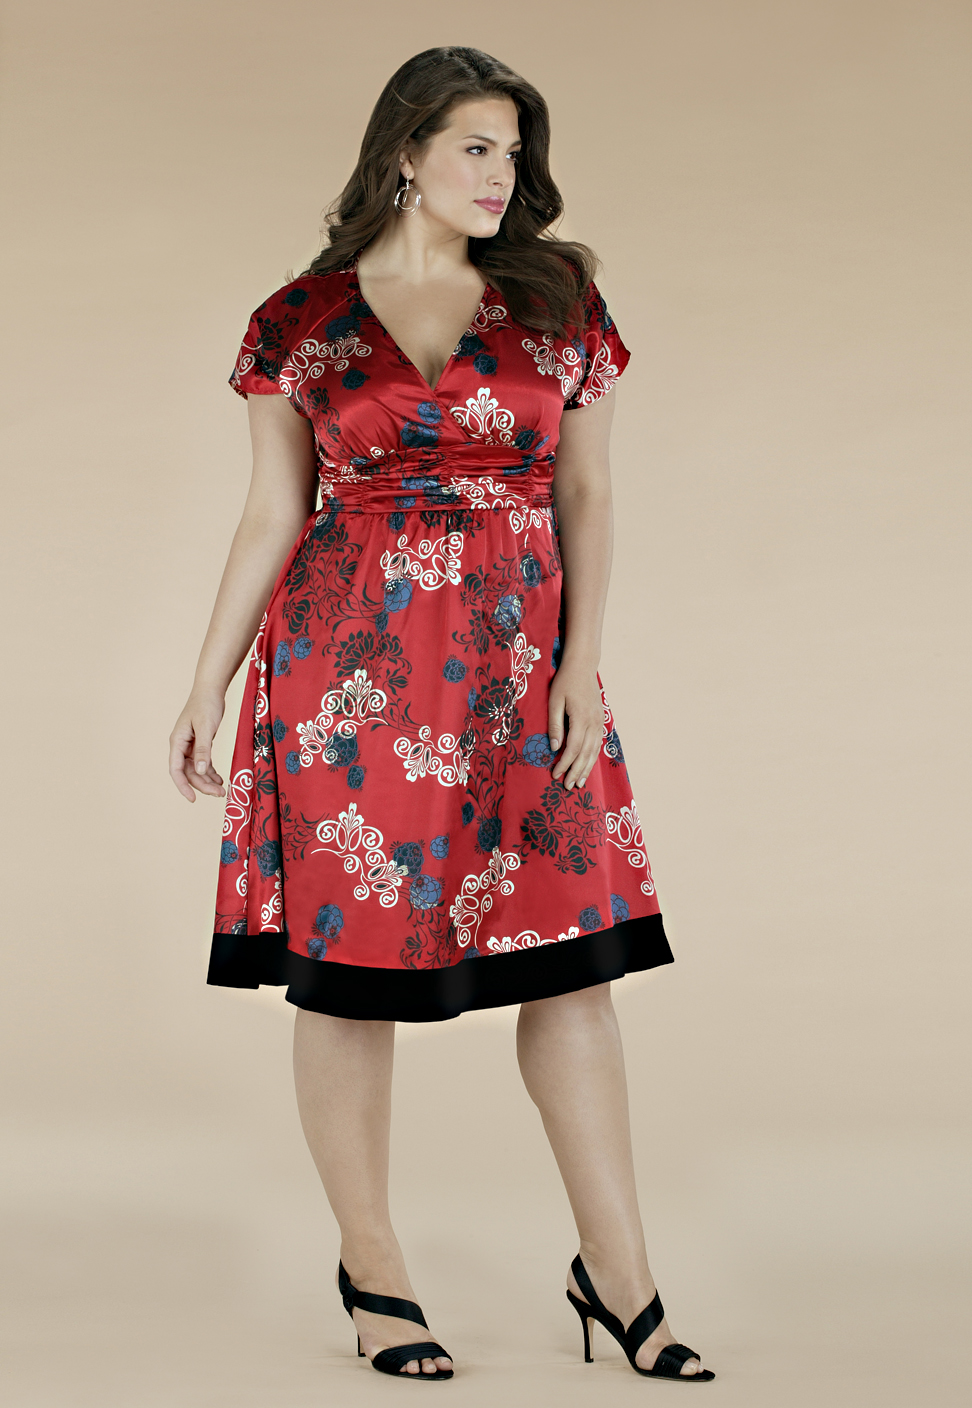 Cato Fashions Plus Sizes Dresses Cato Plus Size Fashion Stores